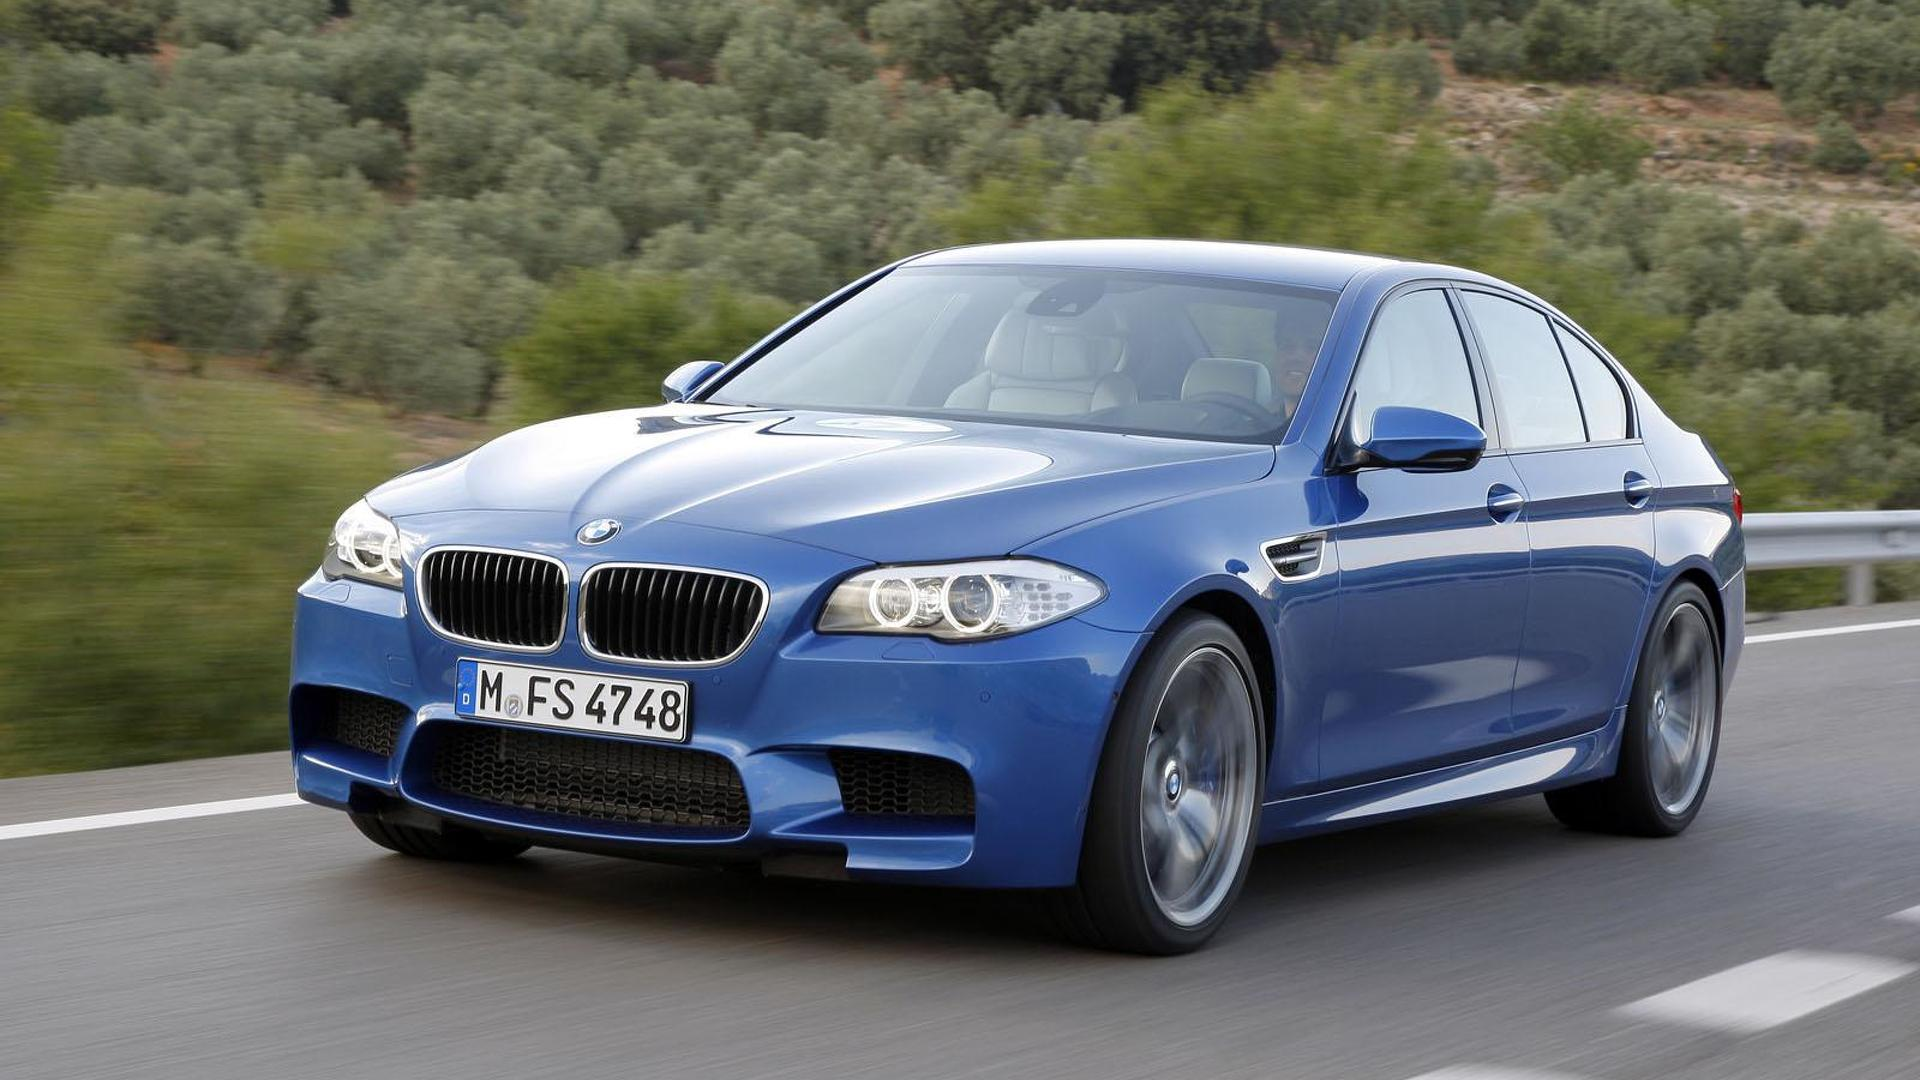 Bmw M5 0 60 >> Bmw F10 M5 Has New 0 To 60 Mph Time Of 3 7 Seconds